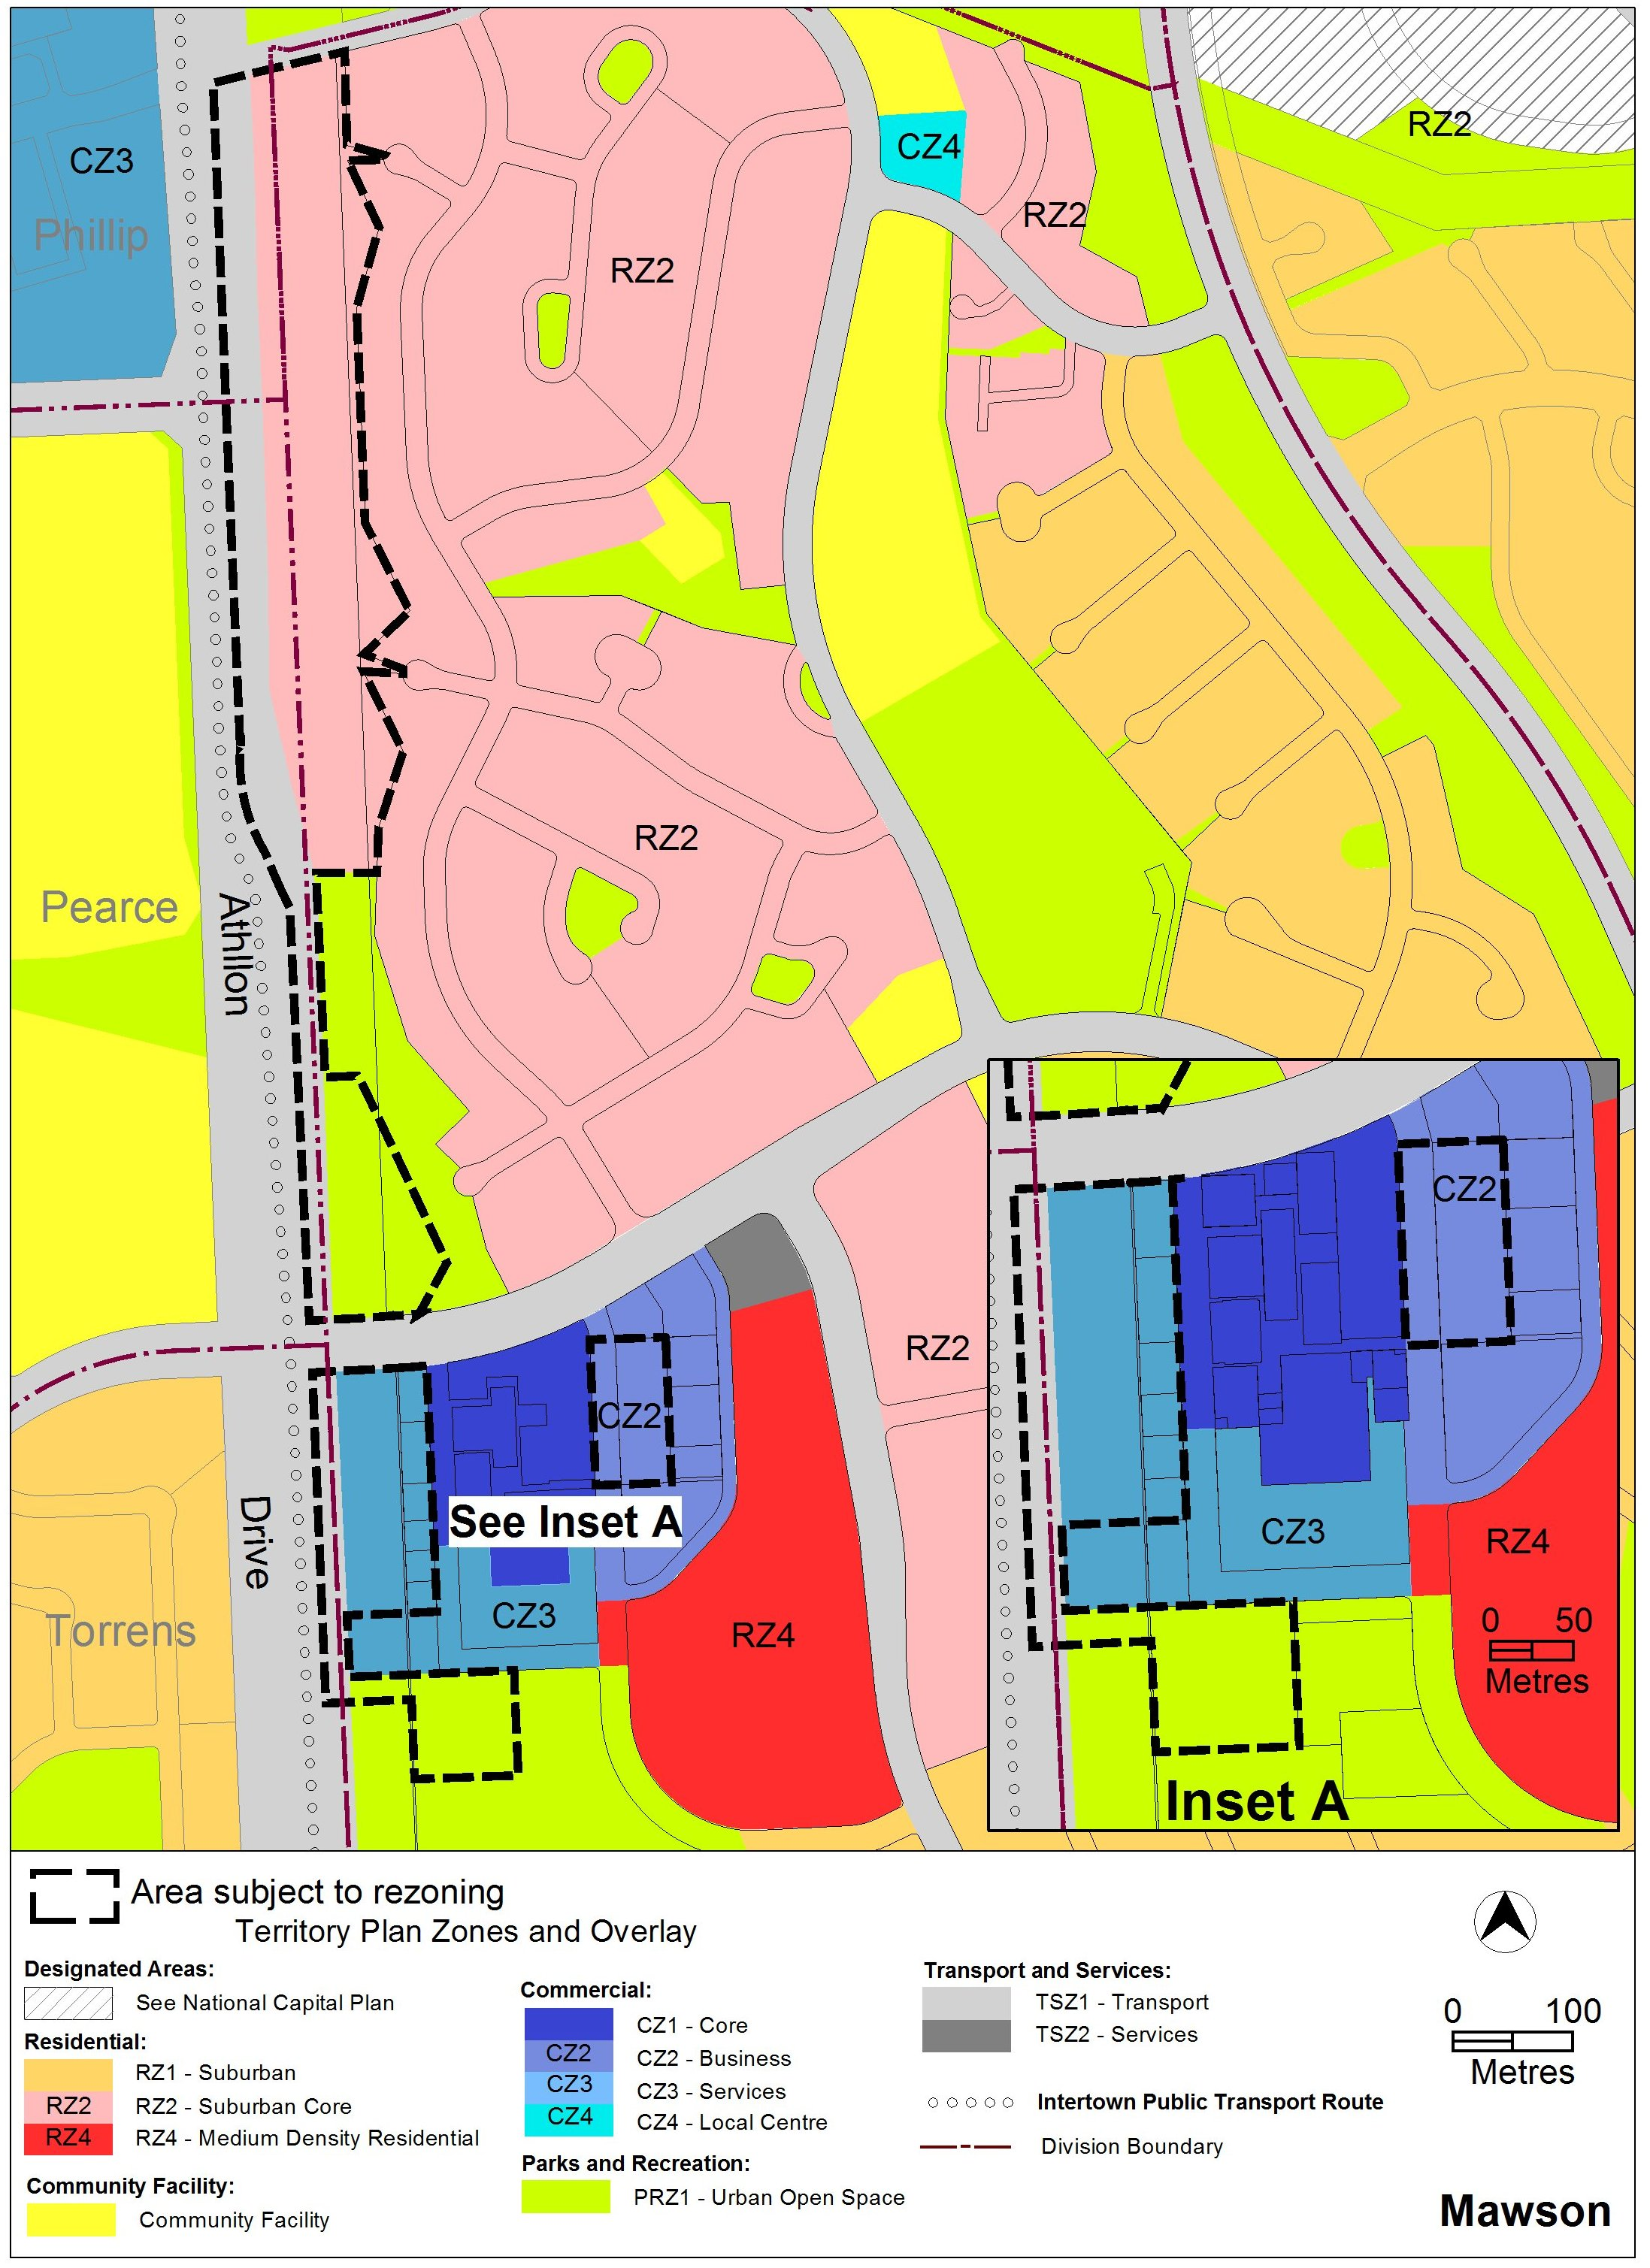 Map of Mawson Centre showing current Territory Plan zoning